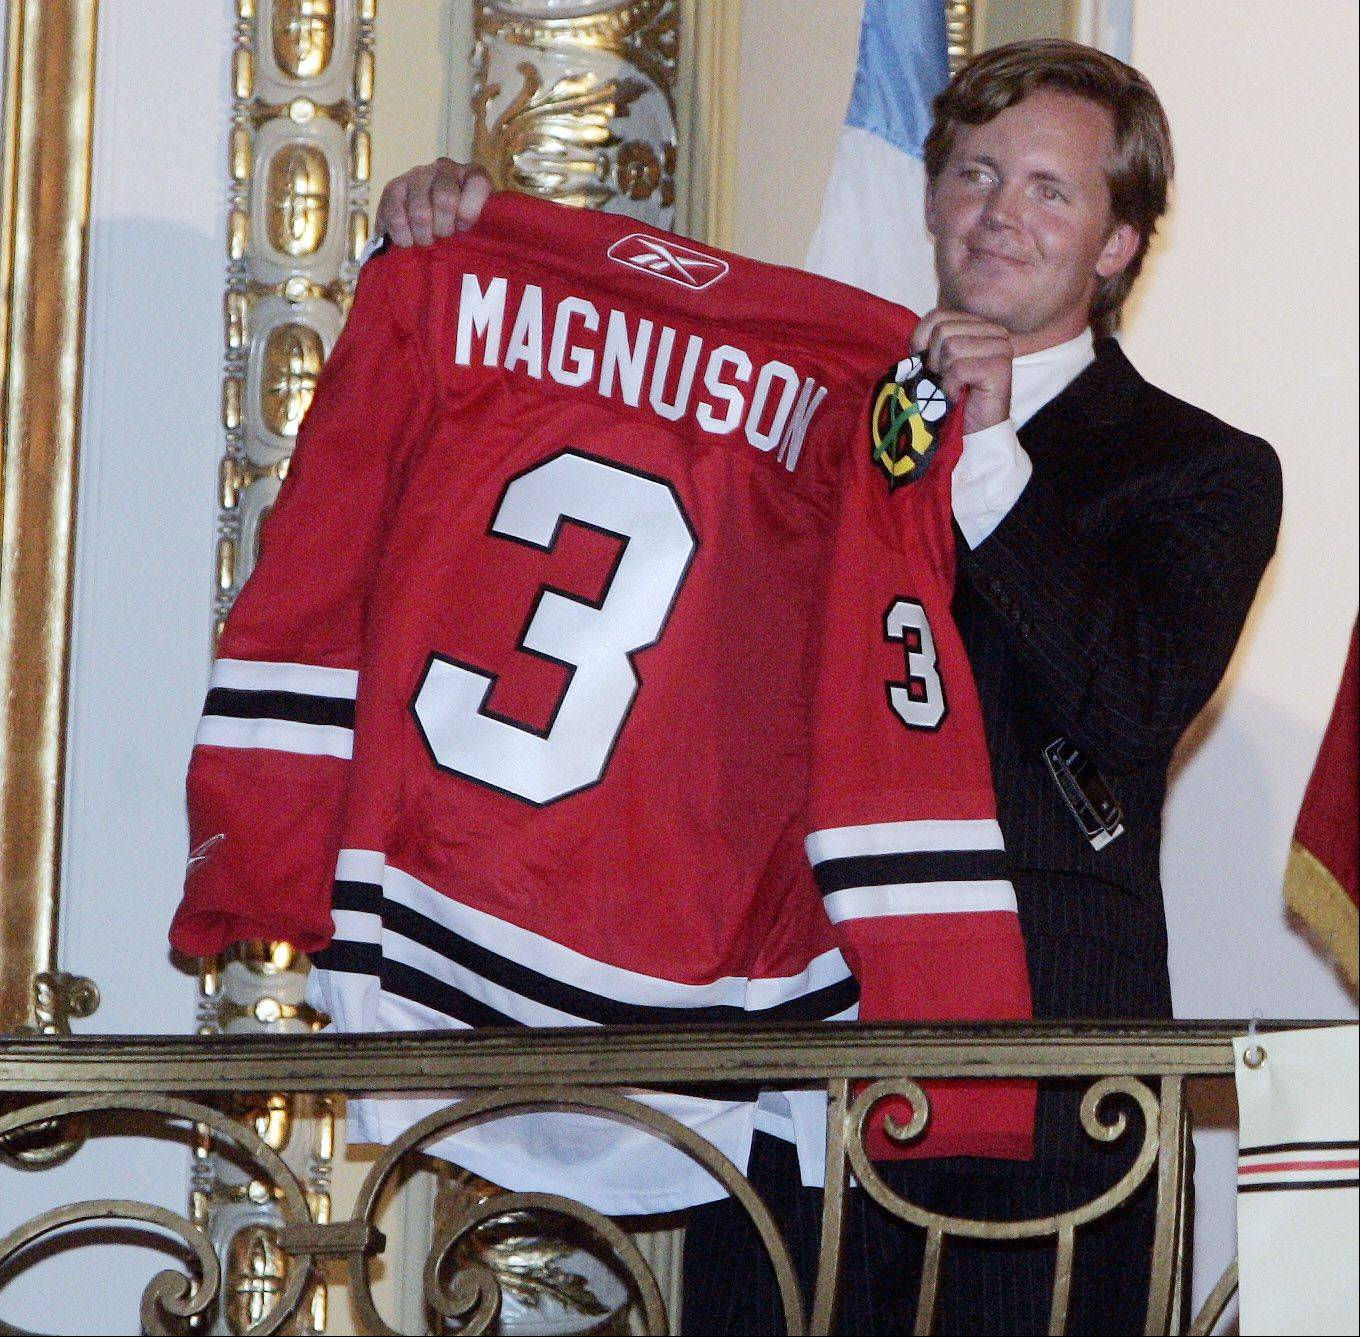 Kevin Magnuson holds up the jersey of his father, Keith Magnuson.